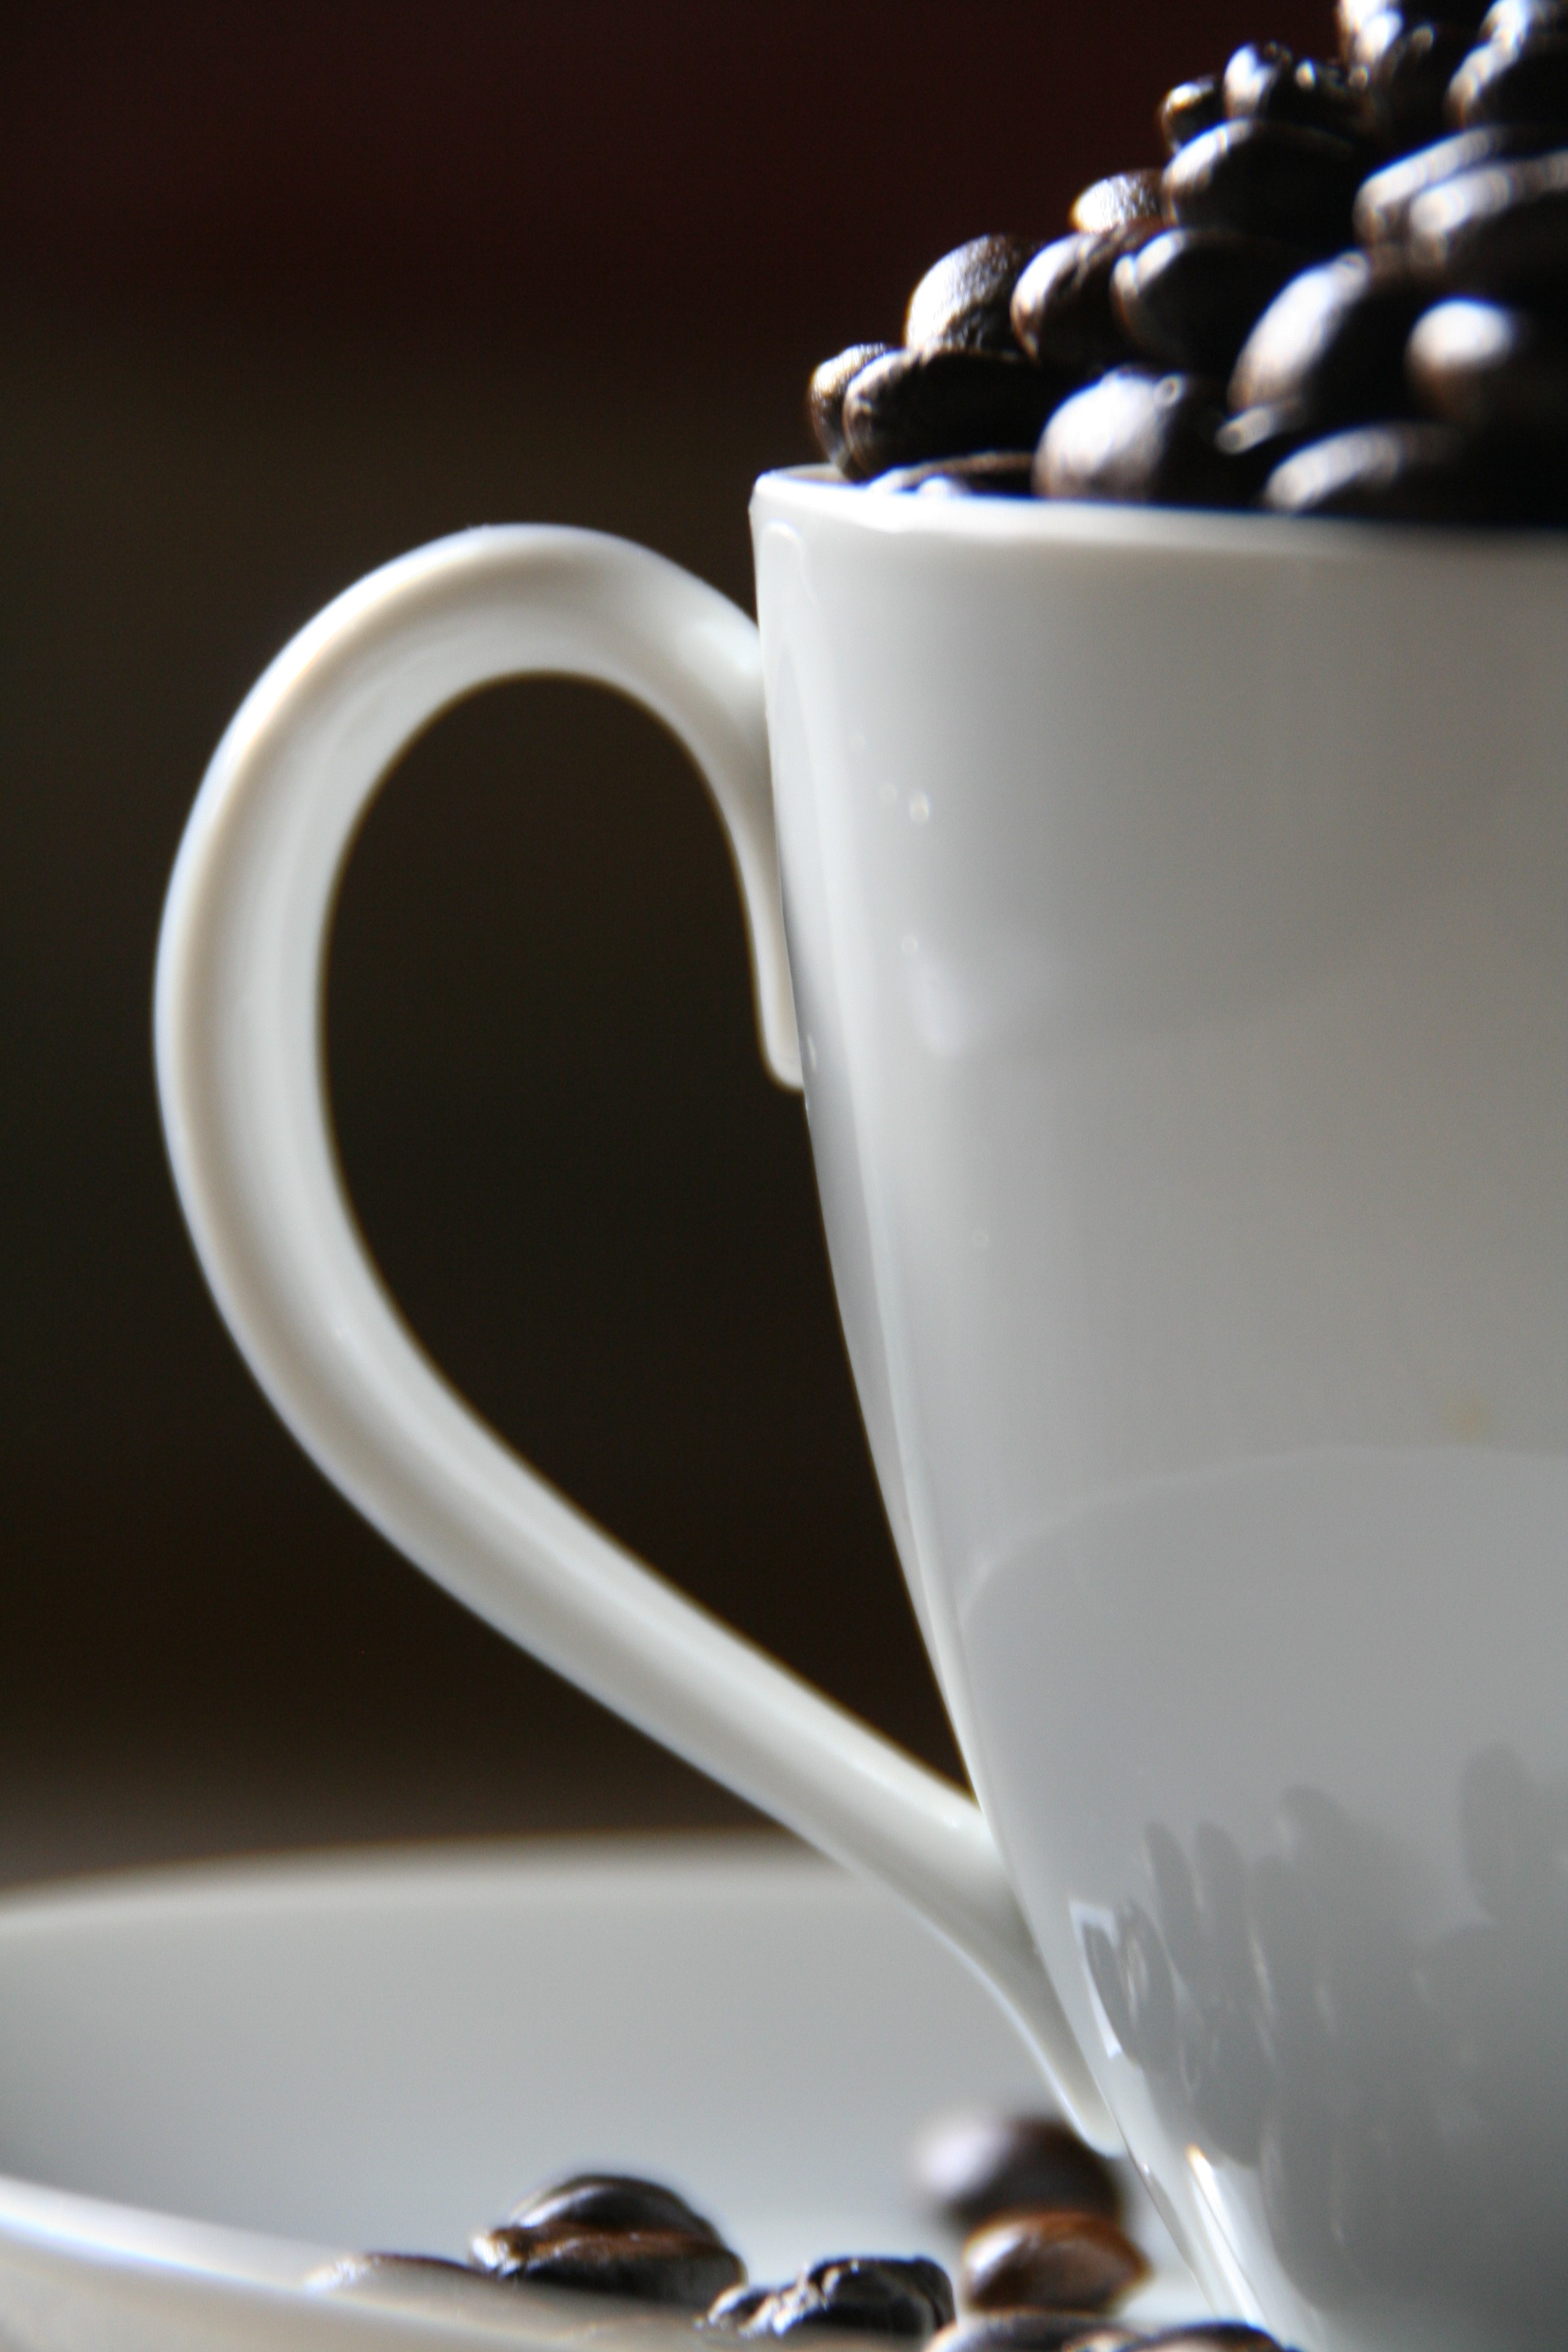 Coffee - Coffee is brewedlike ideas or anger,strained through:thought, feeling, taste.The aroma is antidote,especially for you,the heat-seekingcommunicators ofheartsong, heartache,aligned with theelement of fire,sniffing the scorched air,open-hearted,seeing red,bitter your key.